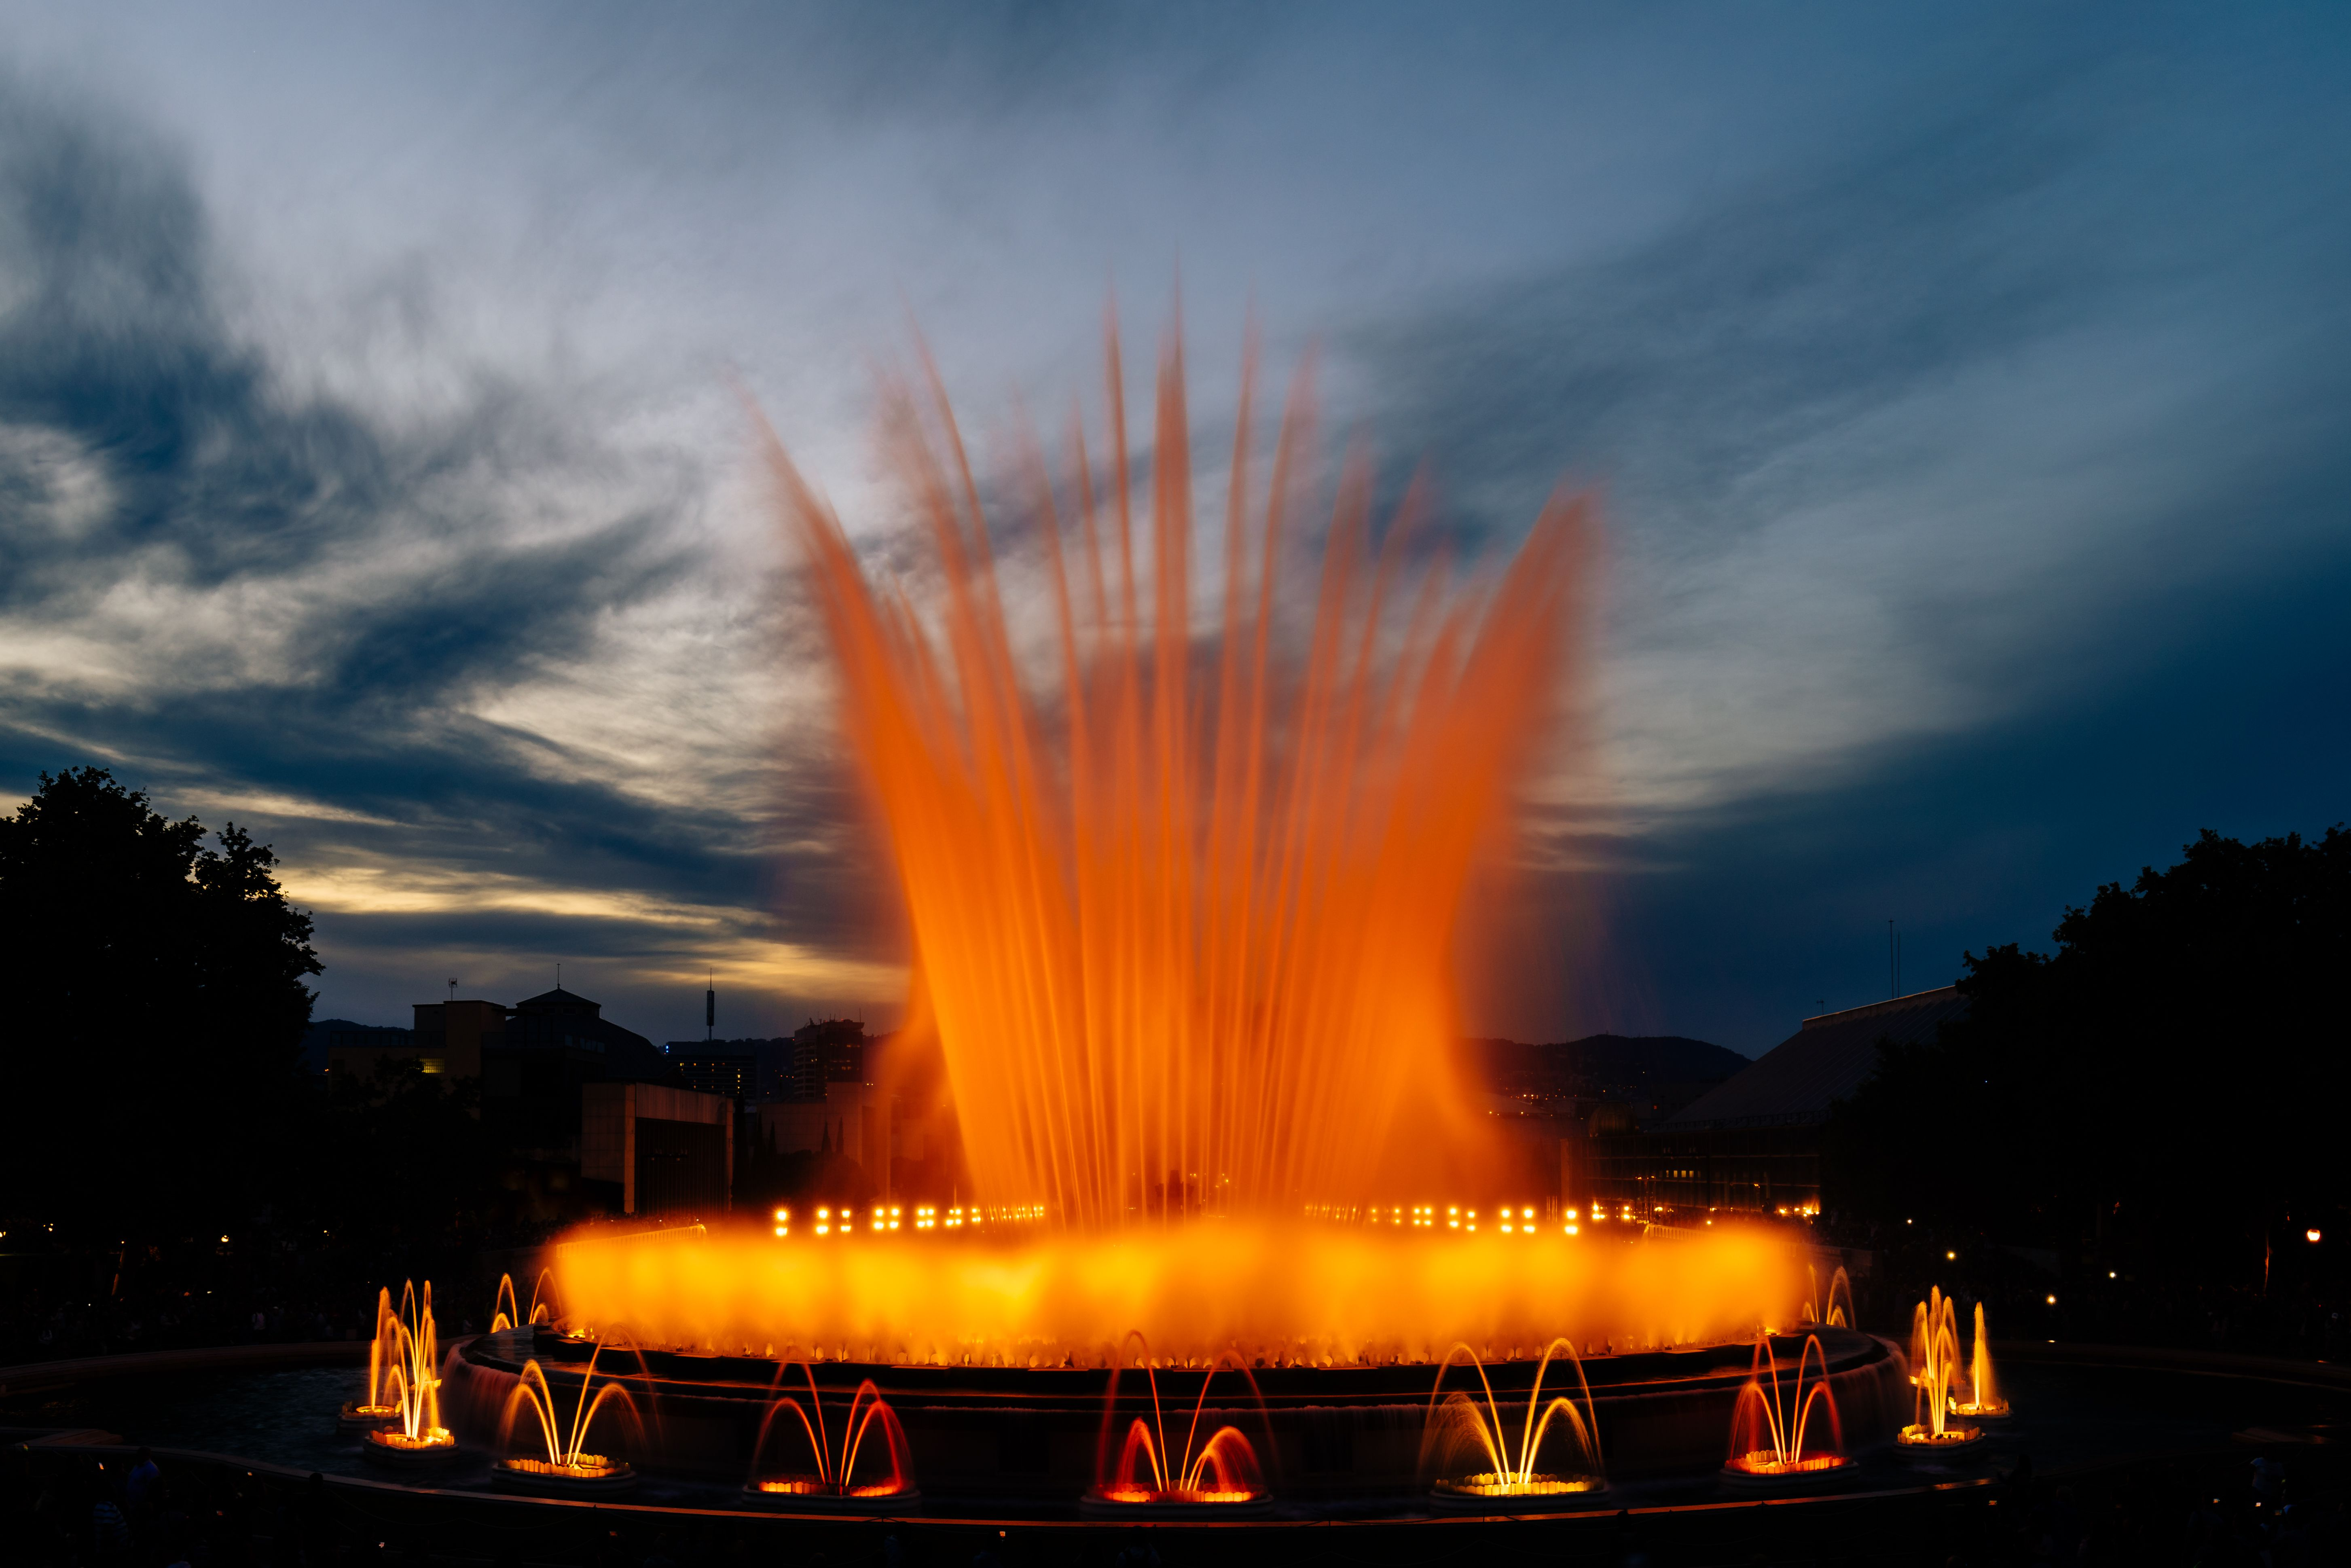 A fountain show with red lights lighting up the night sky